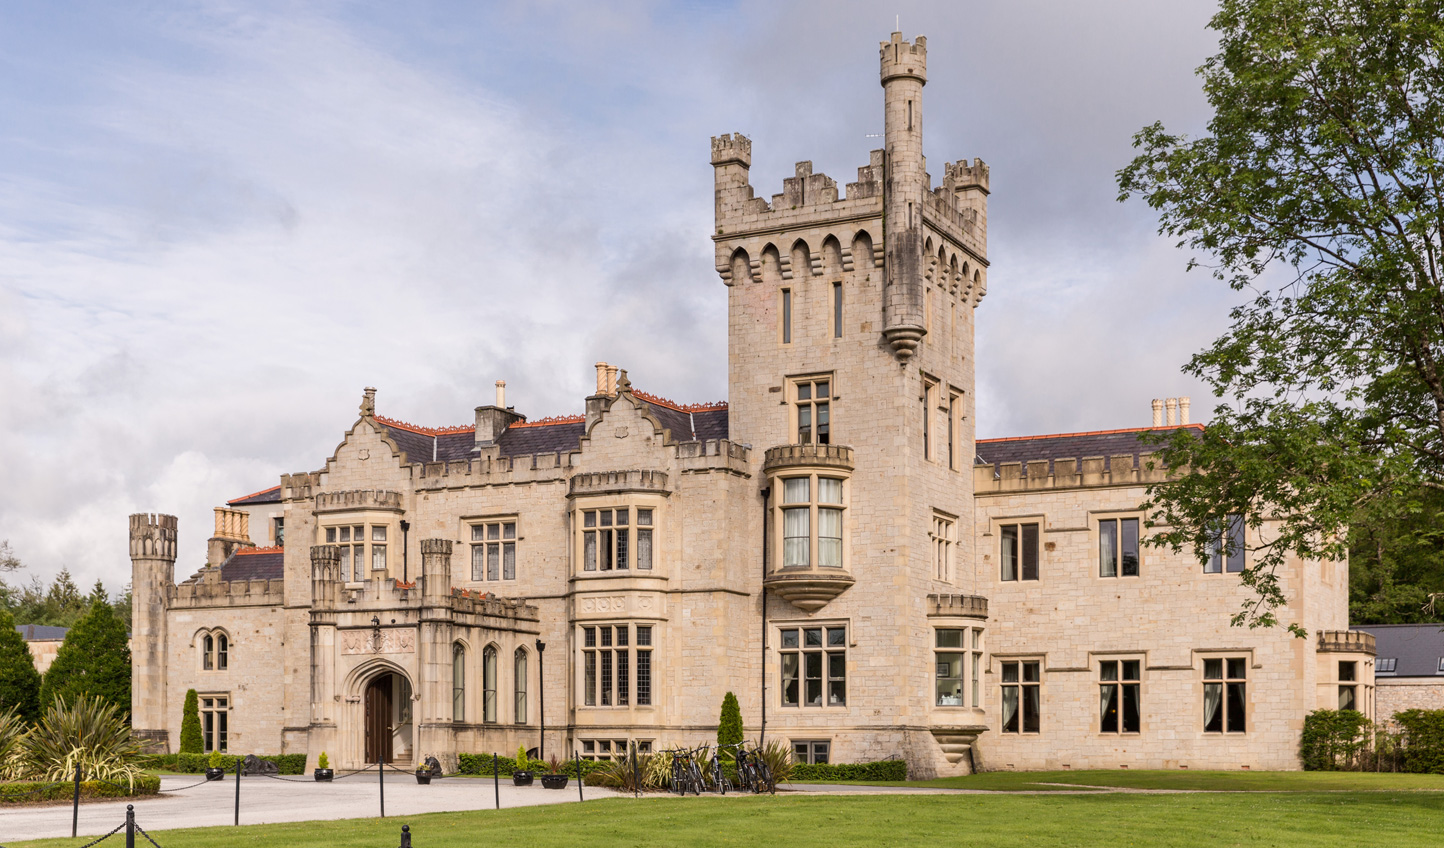 Find your home in the grand castle of Lough Eske